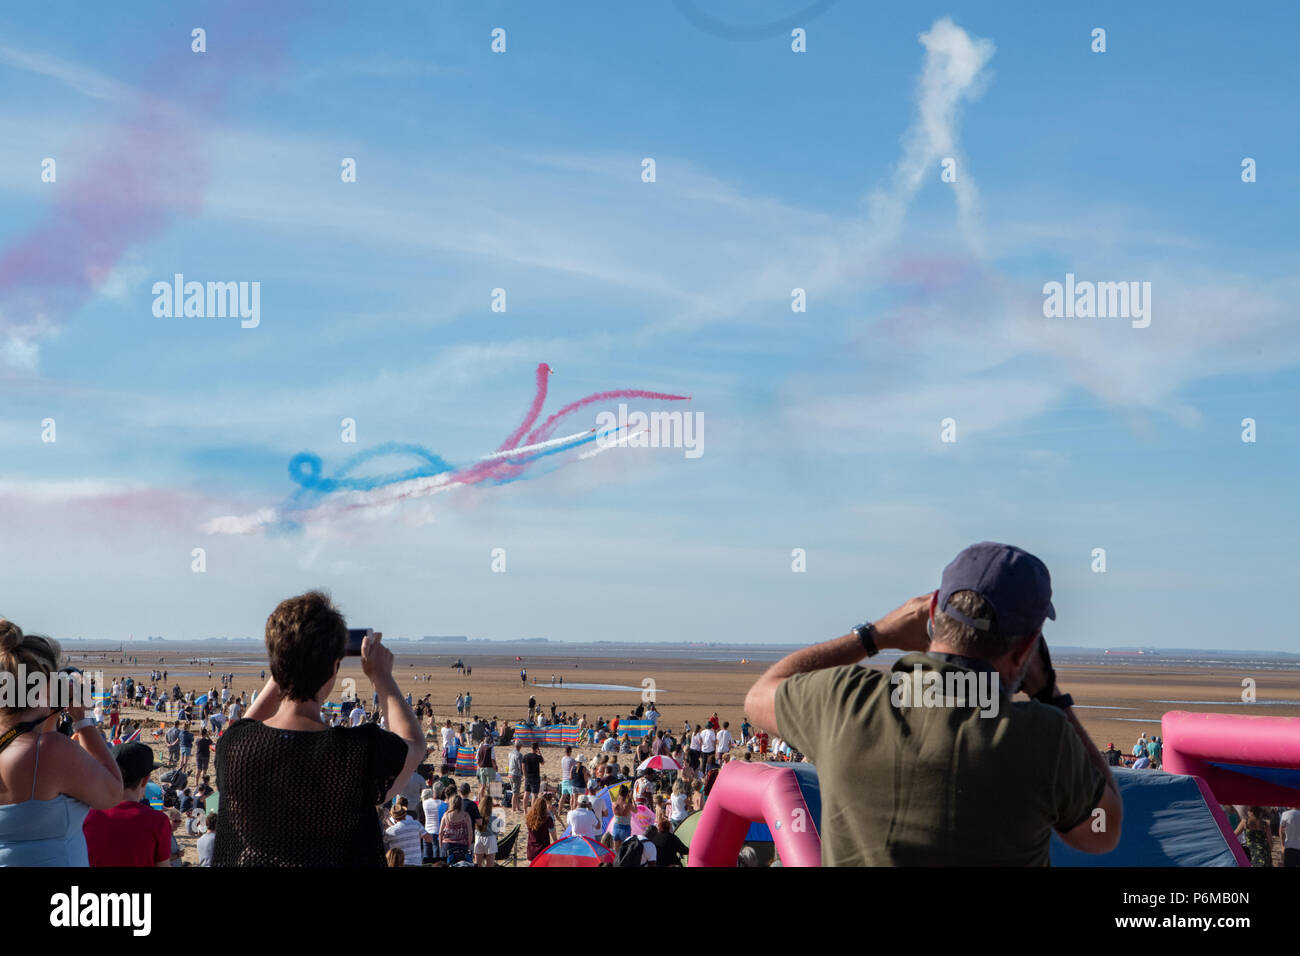 Cleethorpes beach, UK. 1st Jul, 2018. Armed response police patrol the crowds with loaded assault rifles at Armed Forces Day on Cleethorpes beach as thirty thousand tourists turn out in 28 degree heat to watch the air displays and military parades. Credit: Steve Thornton/Alamy Live News - Stock Image